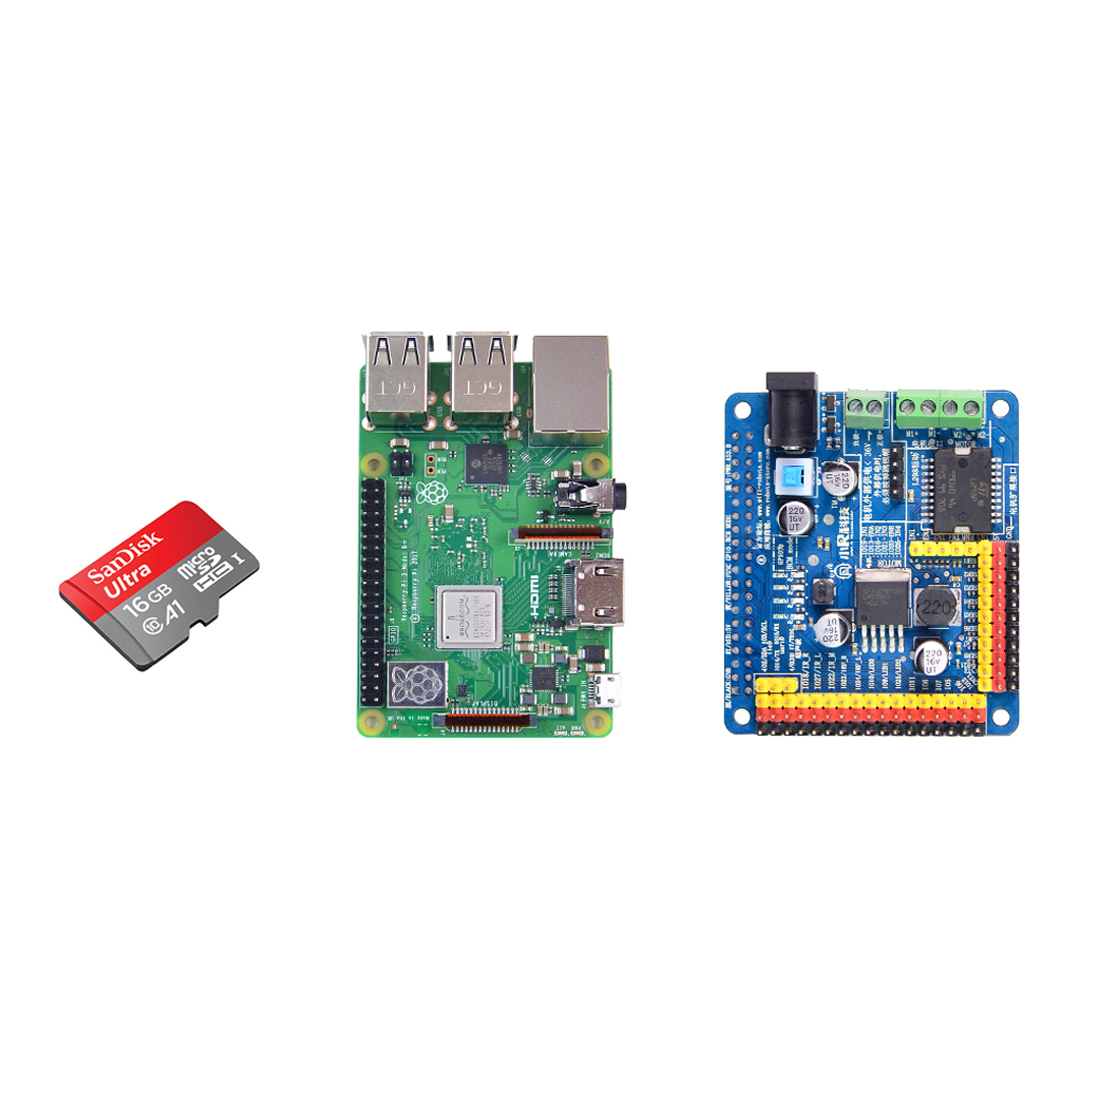 2GB RAM For Raspberry PI Development Board With Expansion Board And 16GB Memory Card